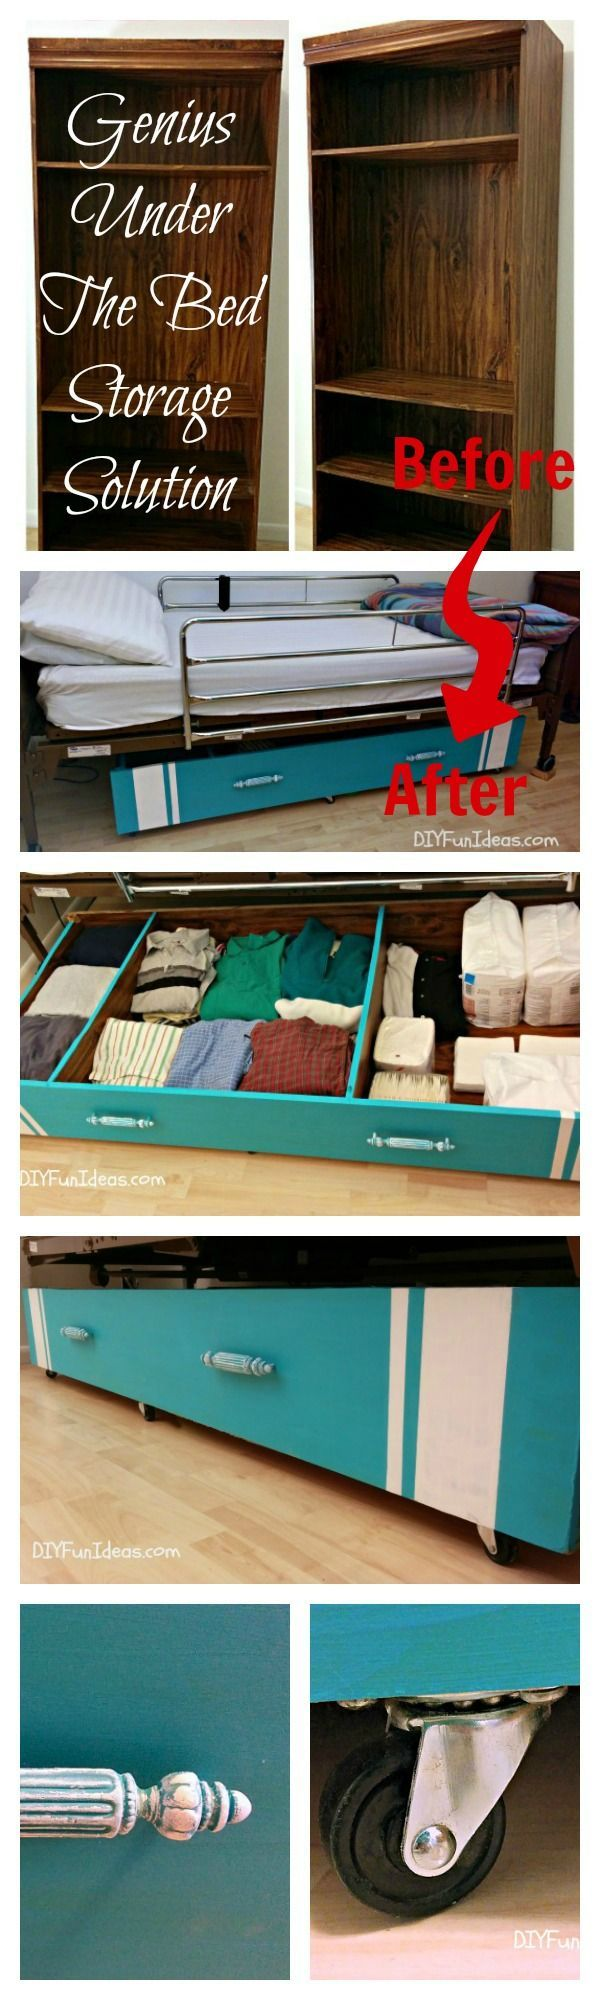 genius diy under the bed storage solution | bed storage, upcycle